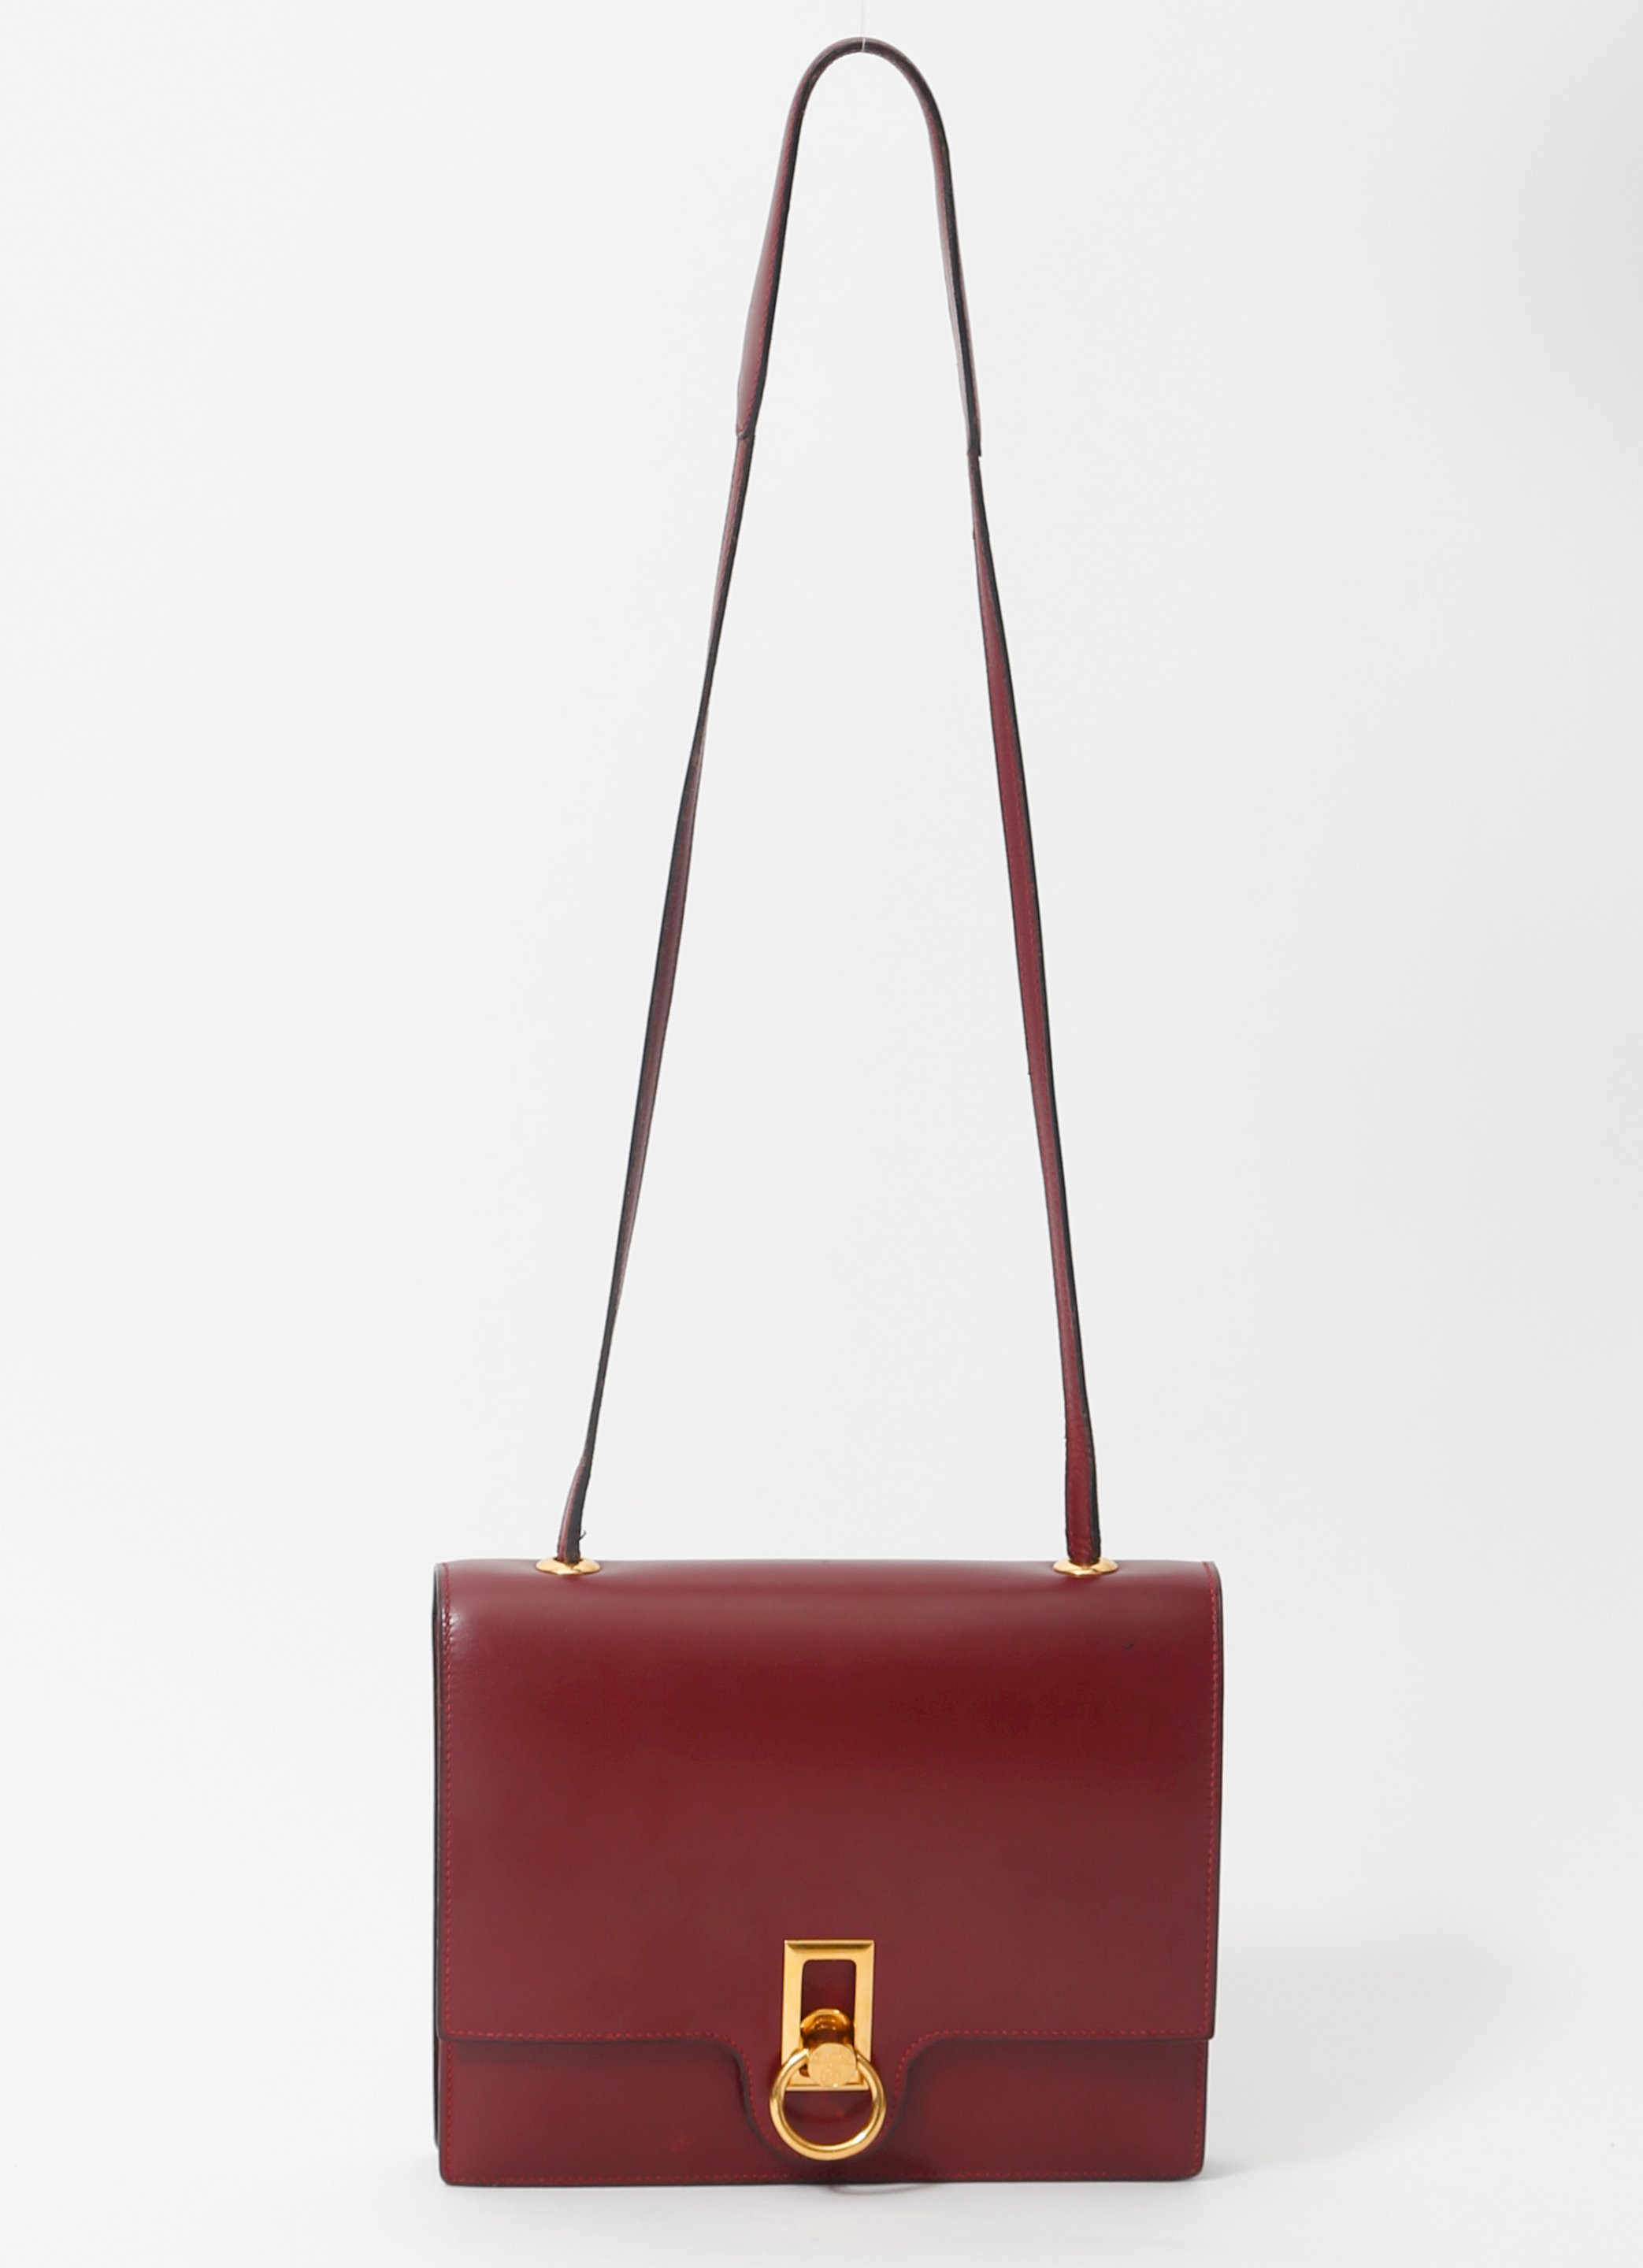 Hermès Sandrine Box Shoulder bag